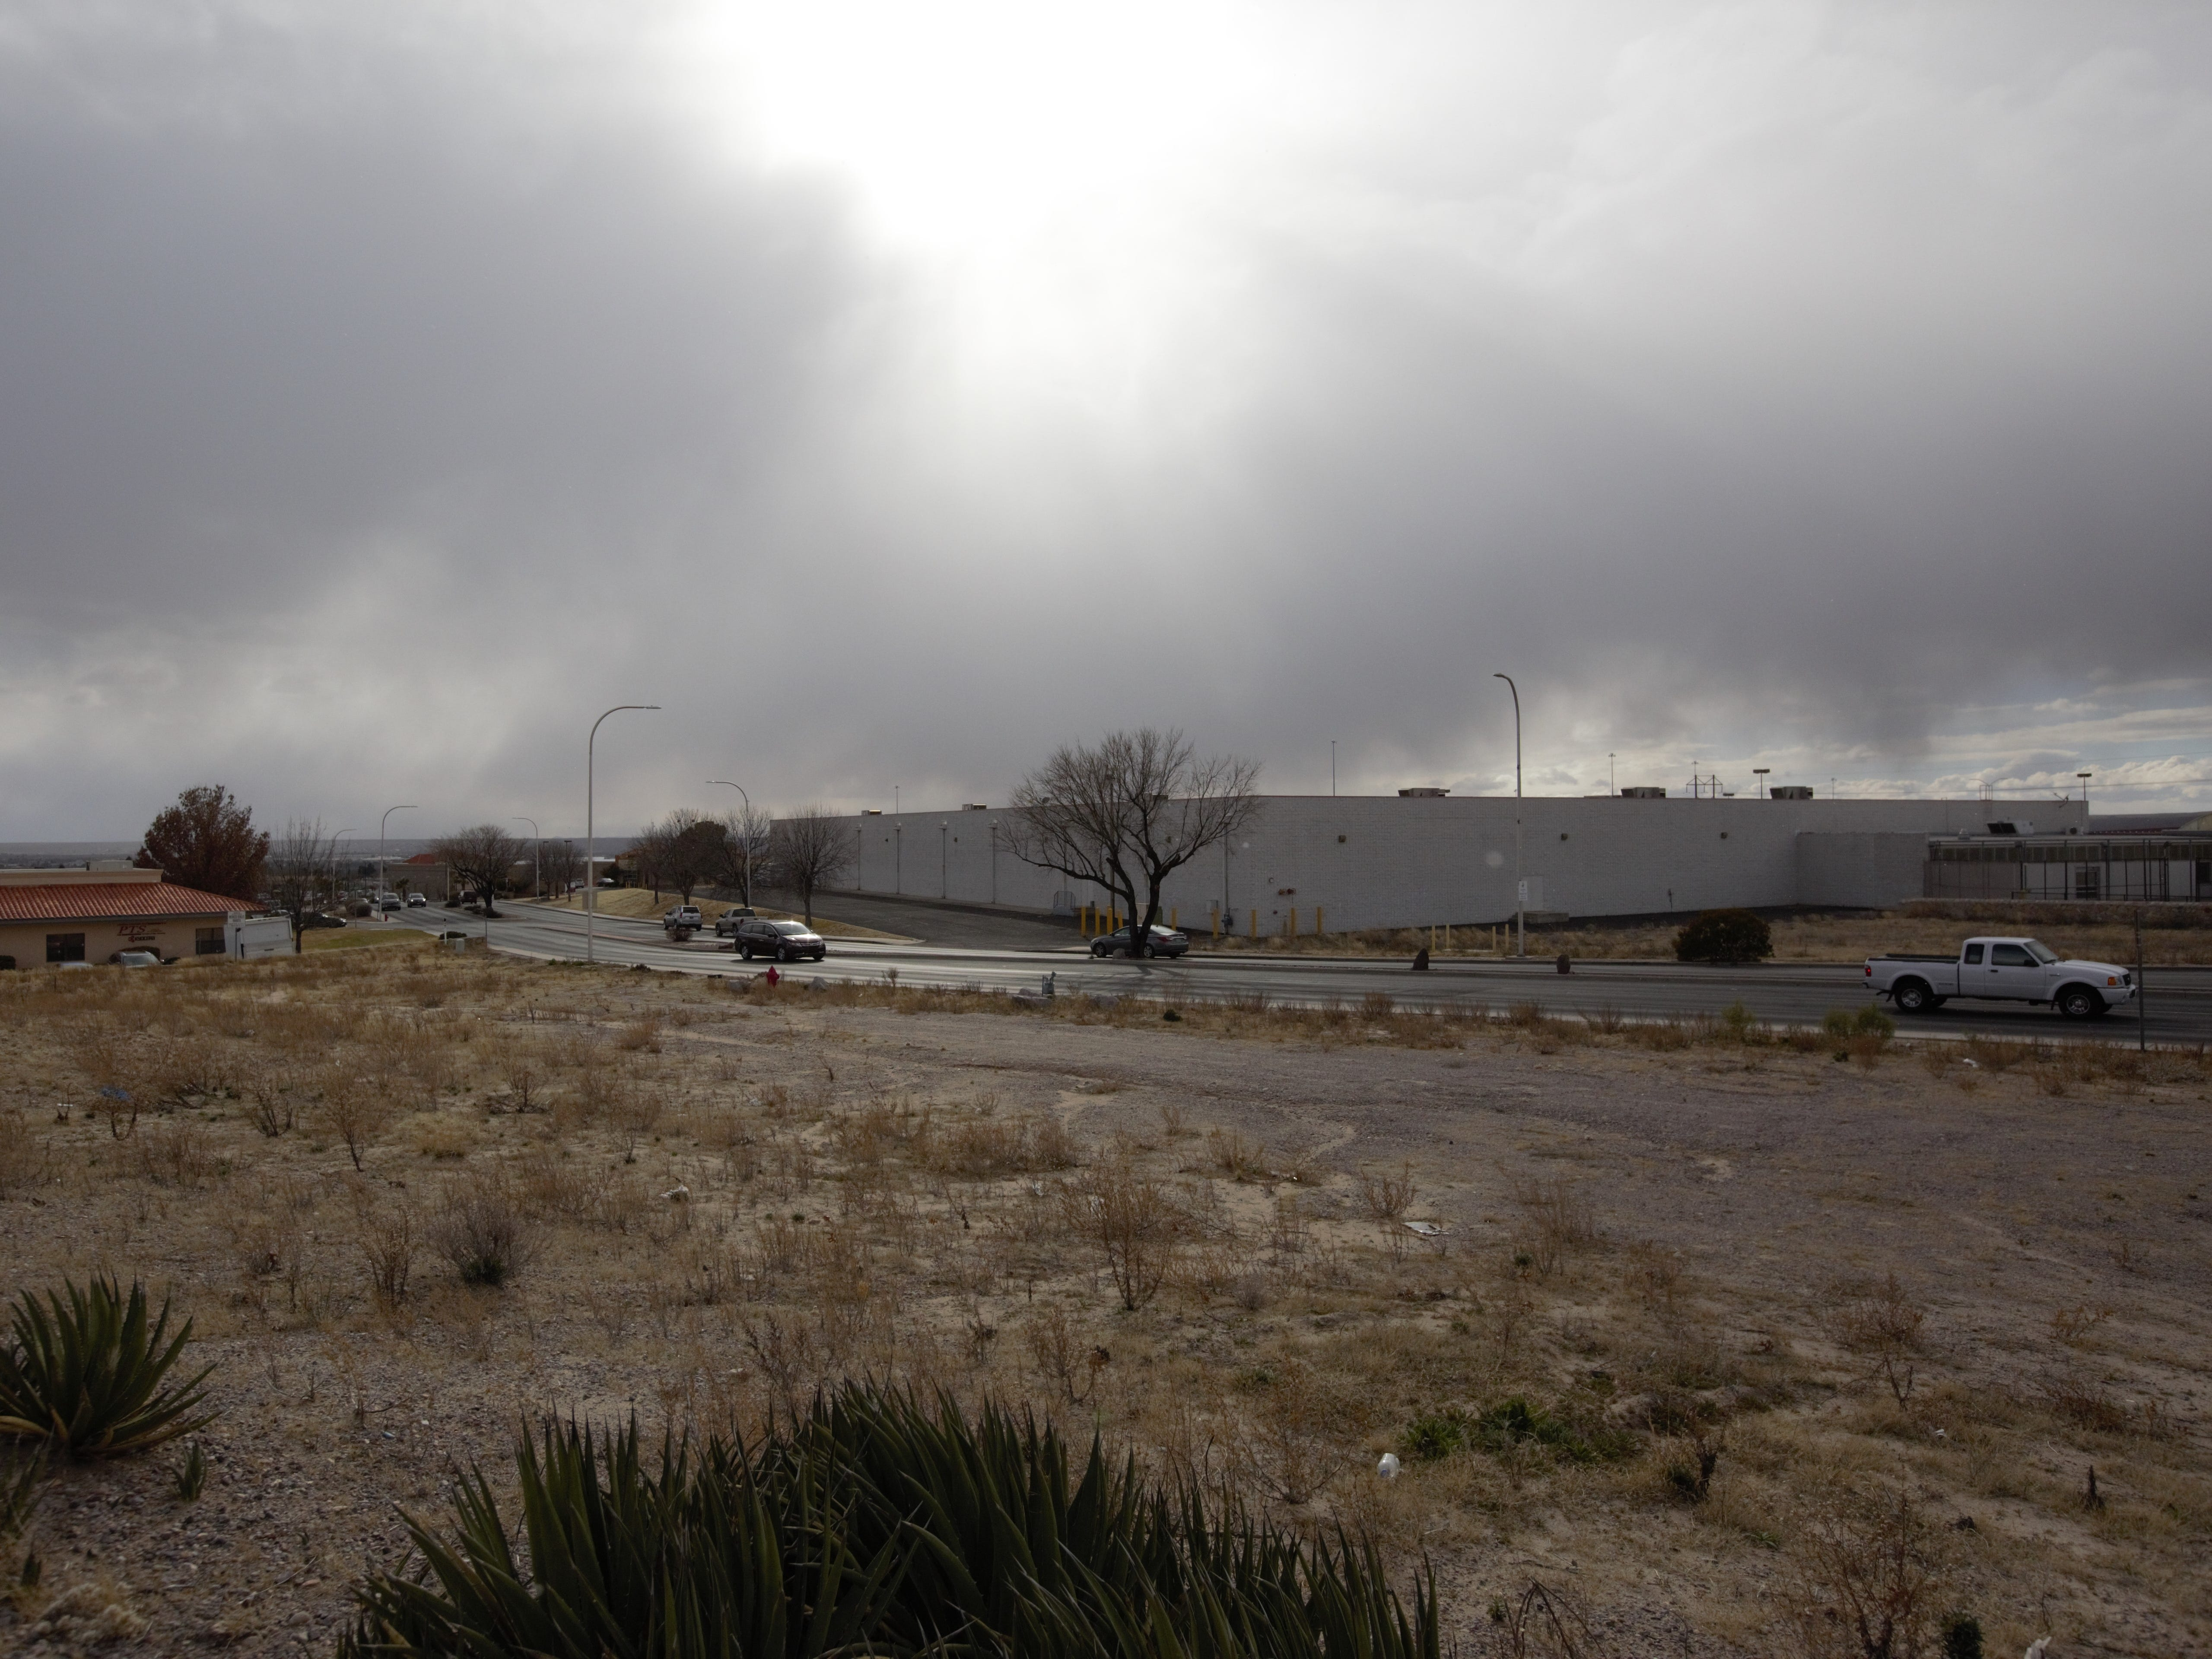 Traffic passes by on Telshor Boulevard in Las Cruces, as the sun breaks through a patch of clouds on Tuesday, Feb. 19, 2019. The day was marked by mixed sunshine and snow flurries.